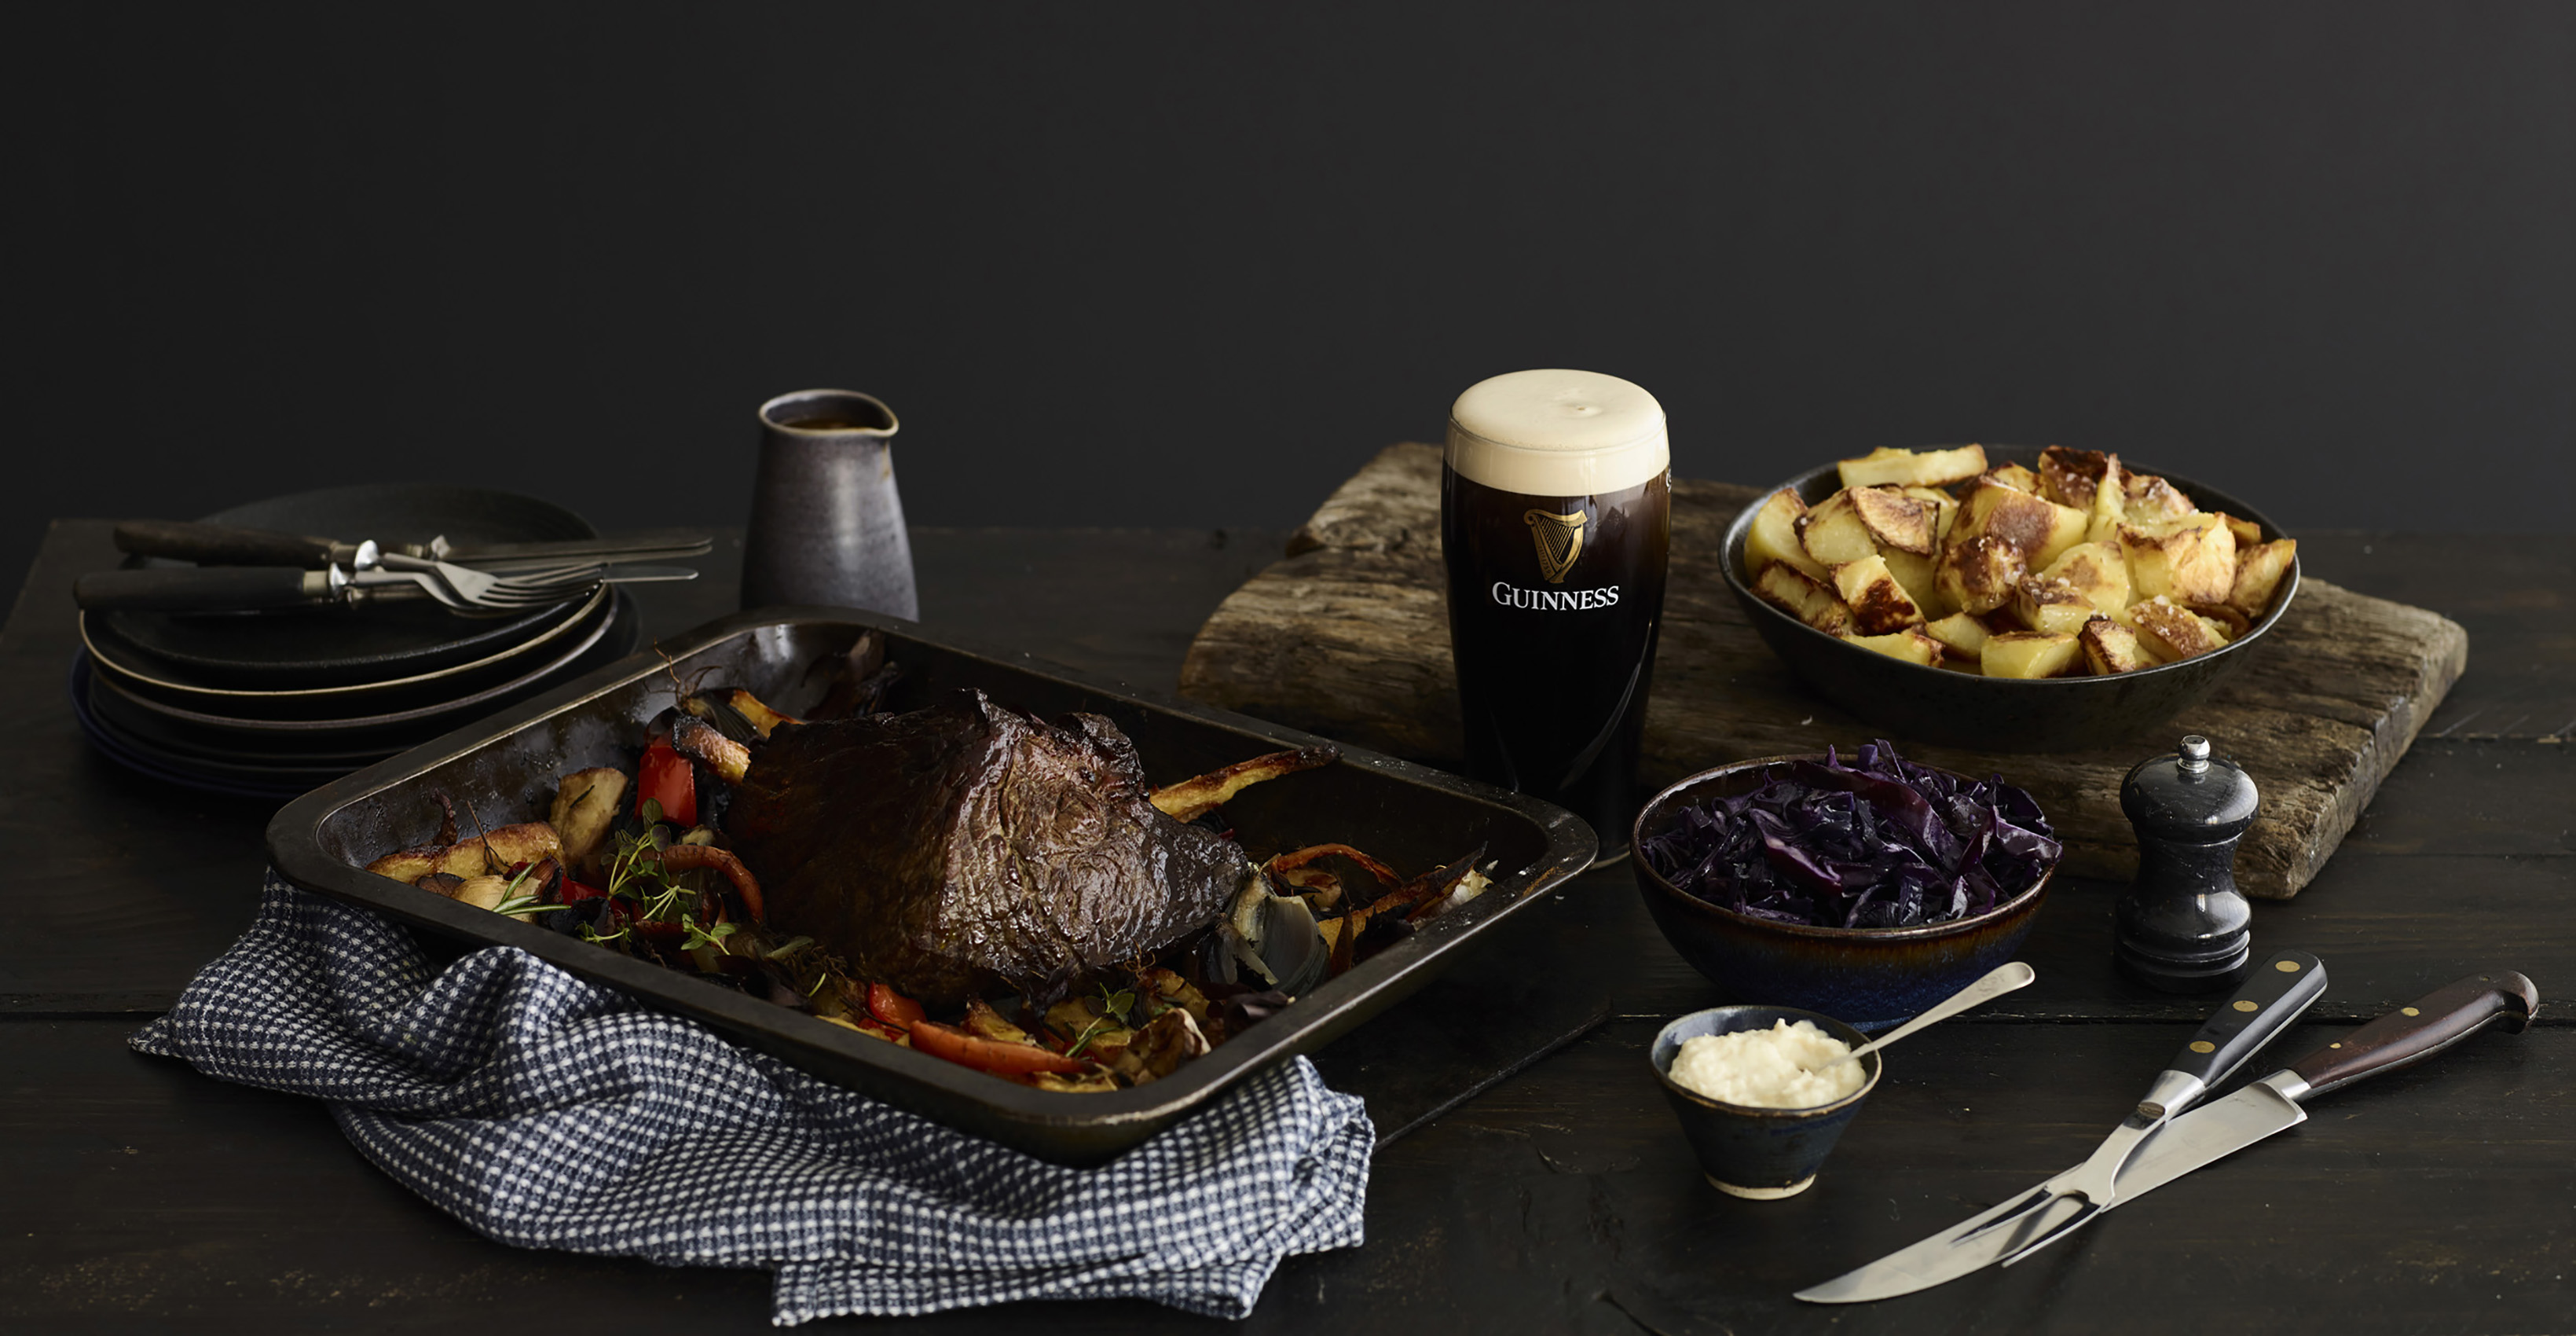 SteveRyan_Photographer_Food_Guinness_RoastBeefDinner_107